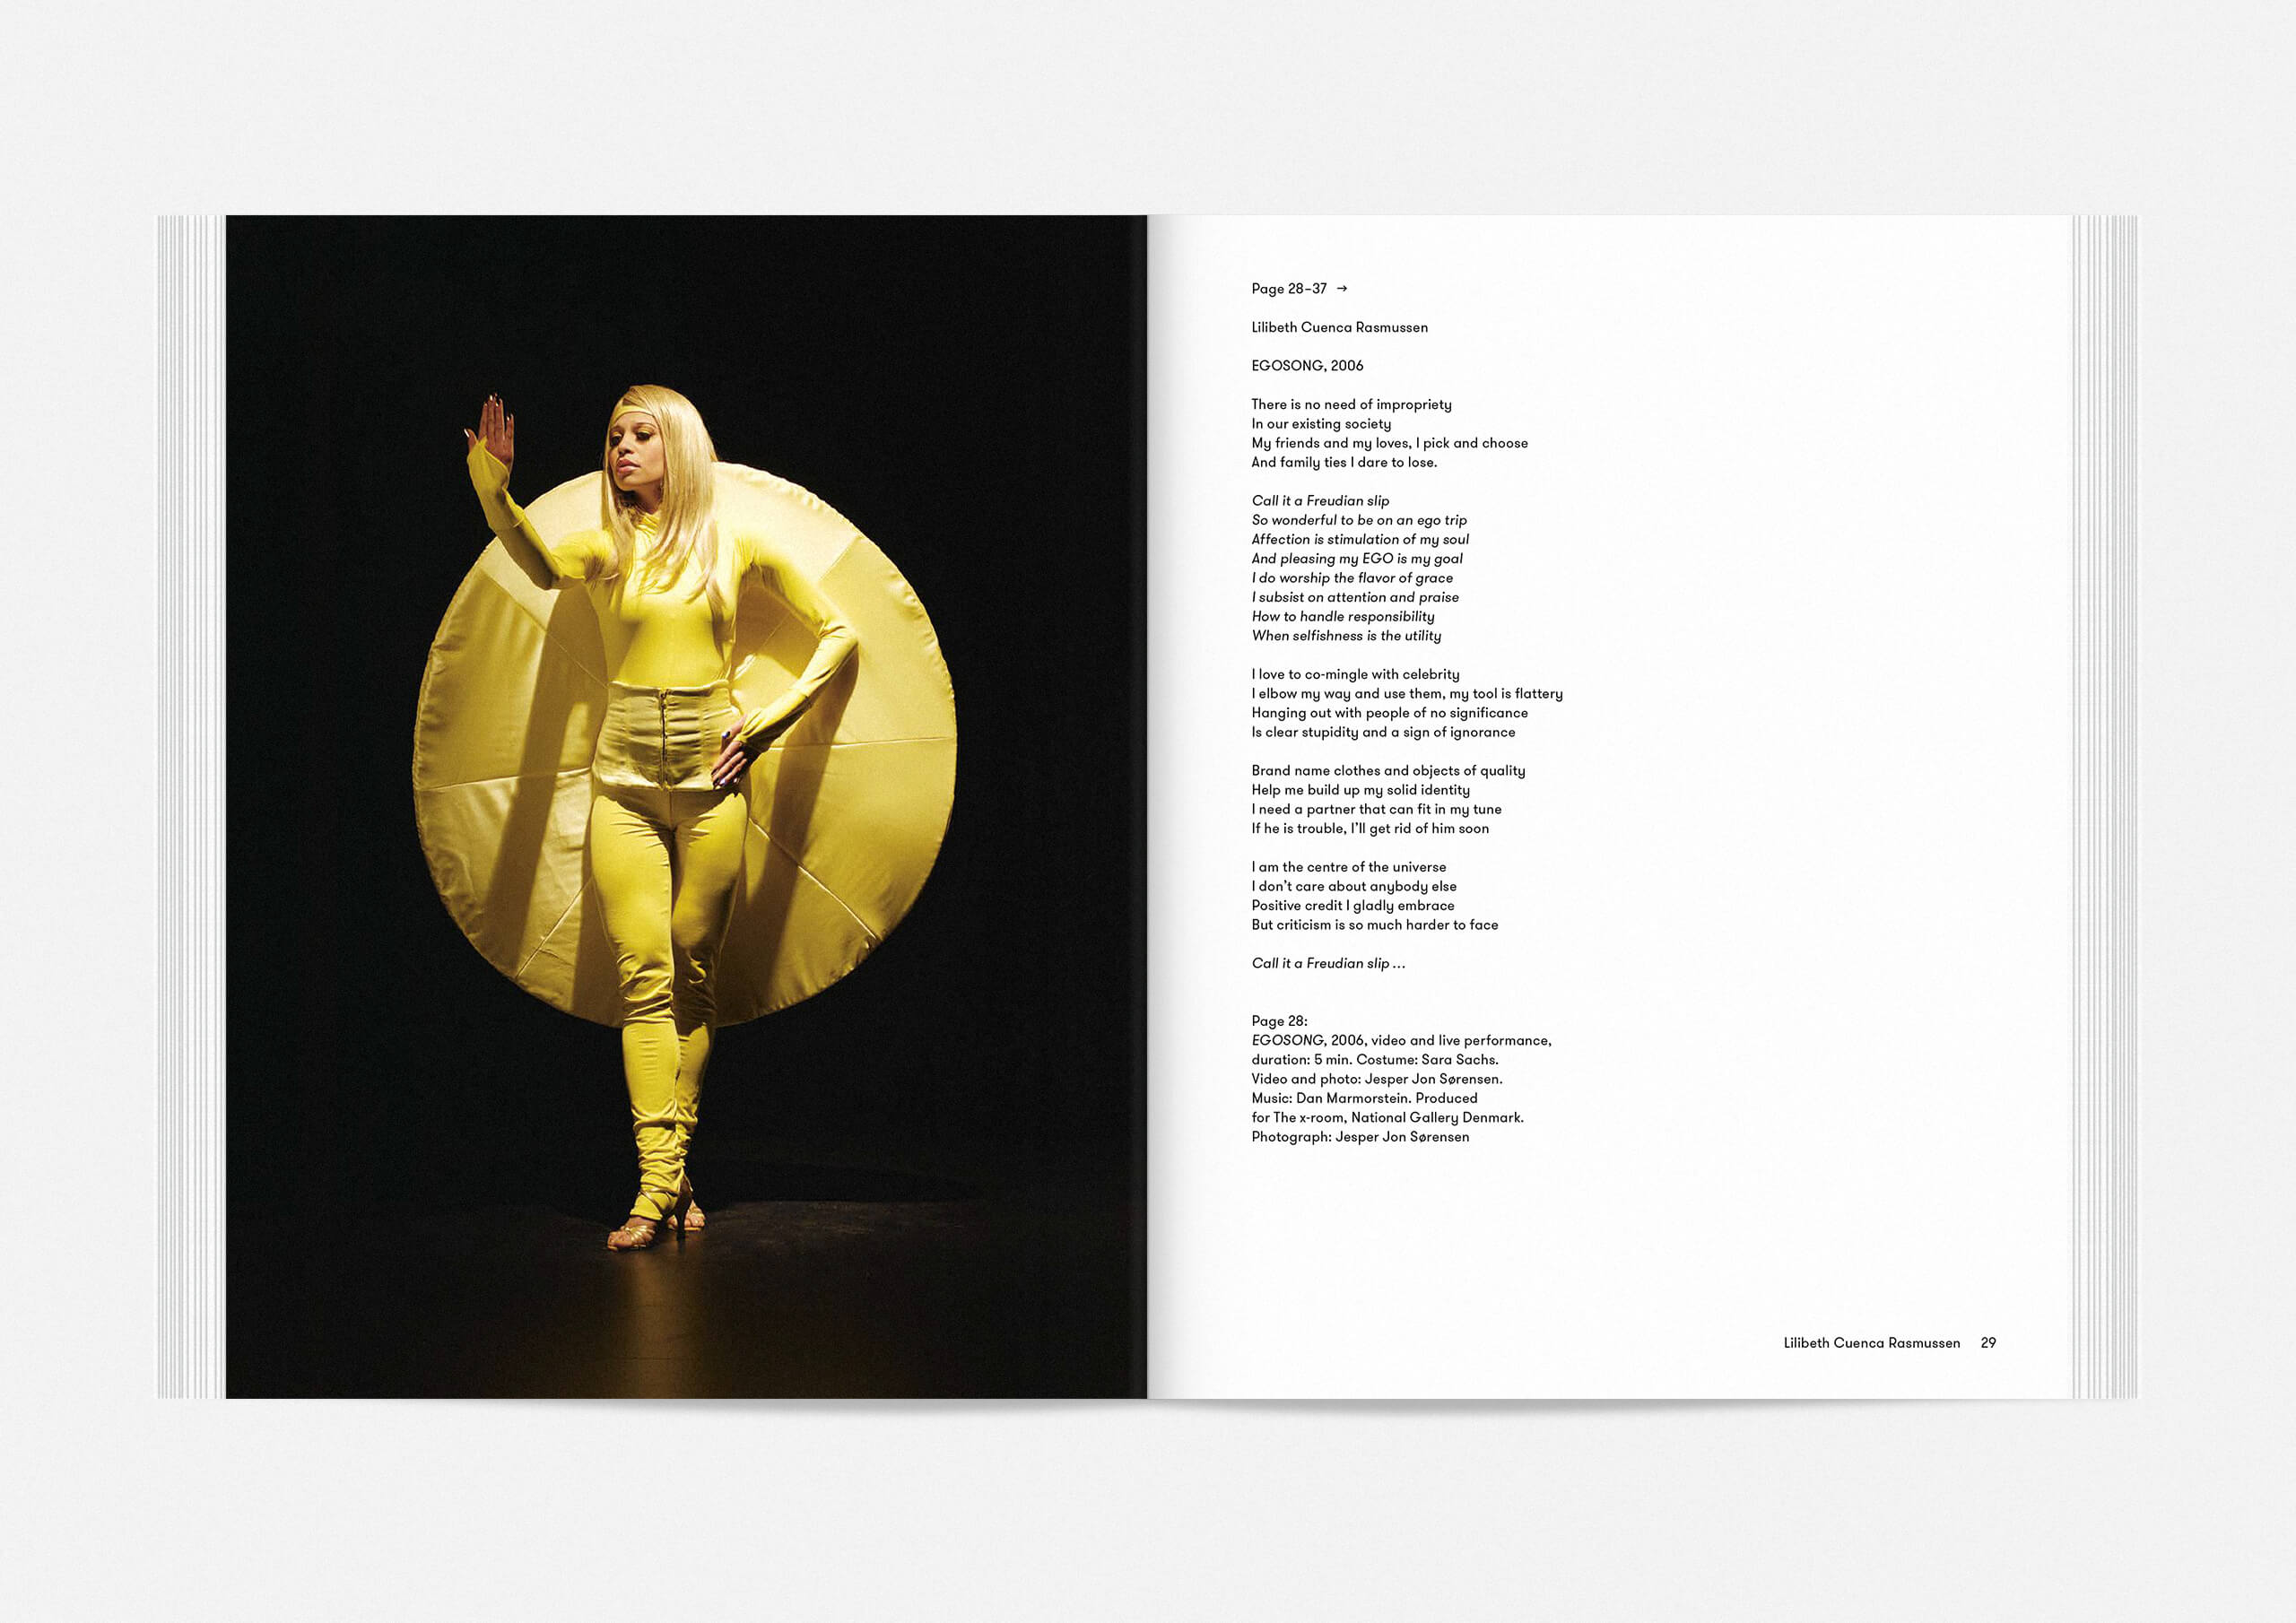 https://neuegestaltung.de/media/pages/clients/protocollum-issue-no-05/b555061fba-1597415141/protocollum-5-page-2829-ng.jpg